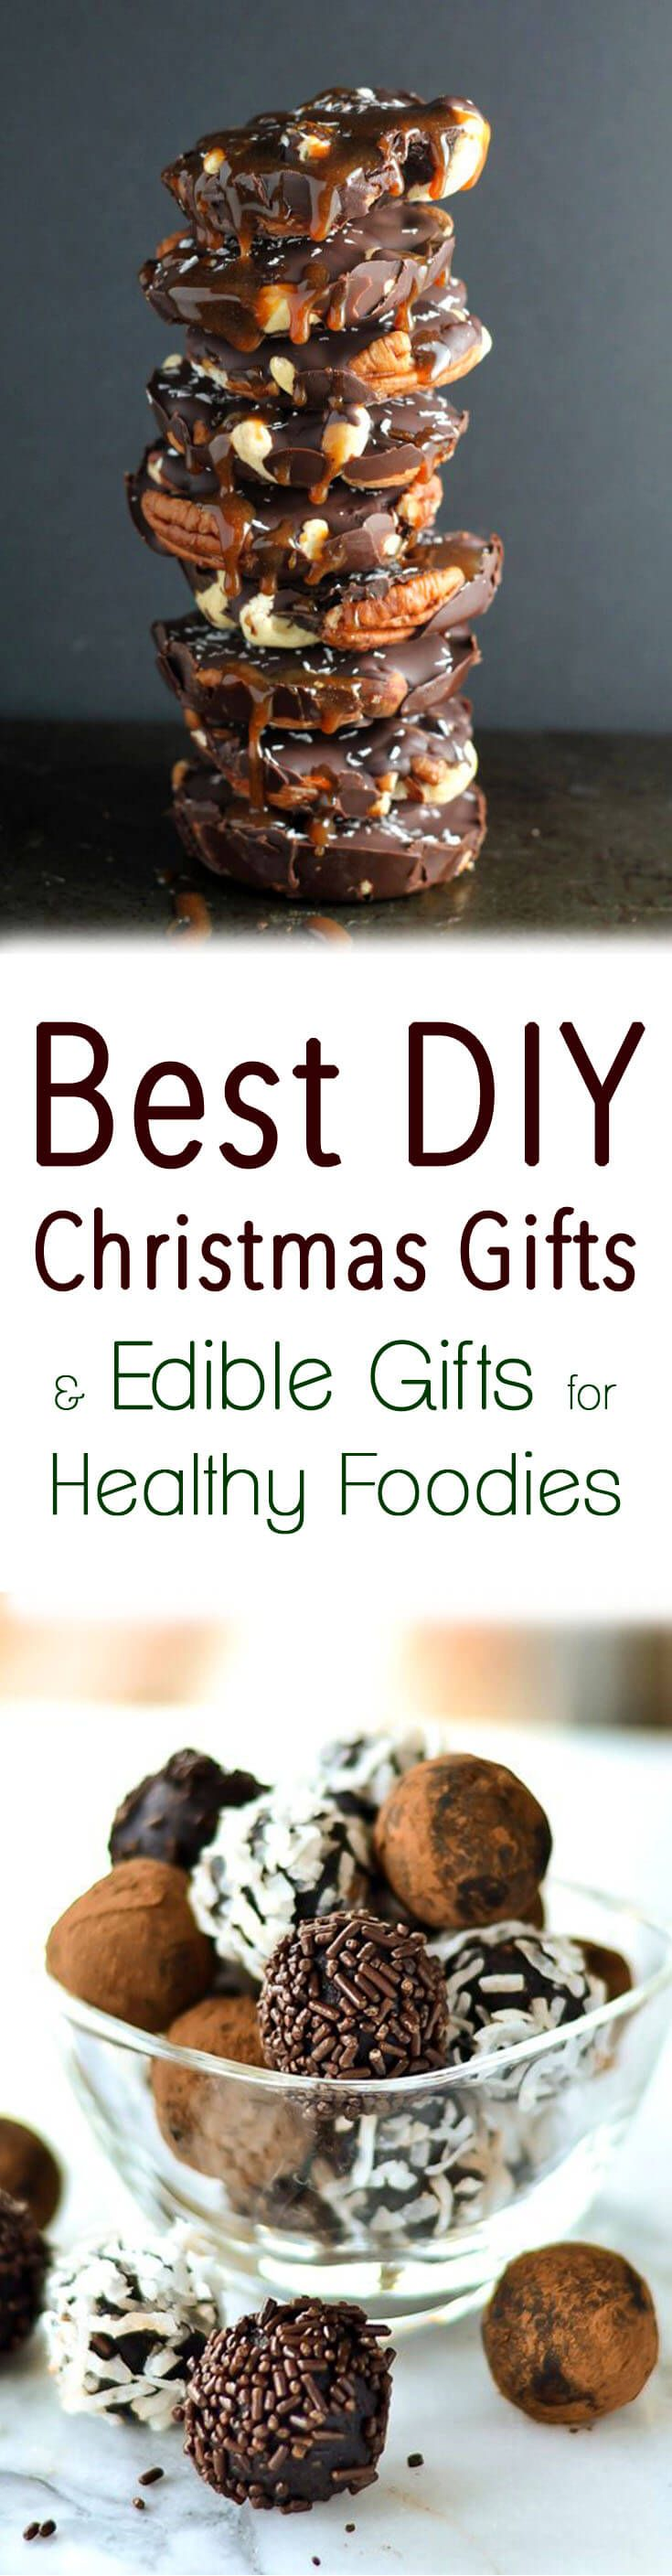 Check out this round up of the Best DIY Christmas Gifts and Edible Gifts for Healthy Foodies including recipes for chocolate bark, jams, cookies and more!